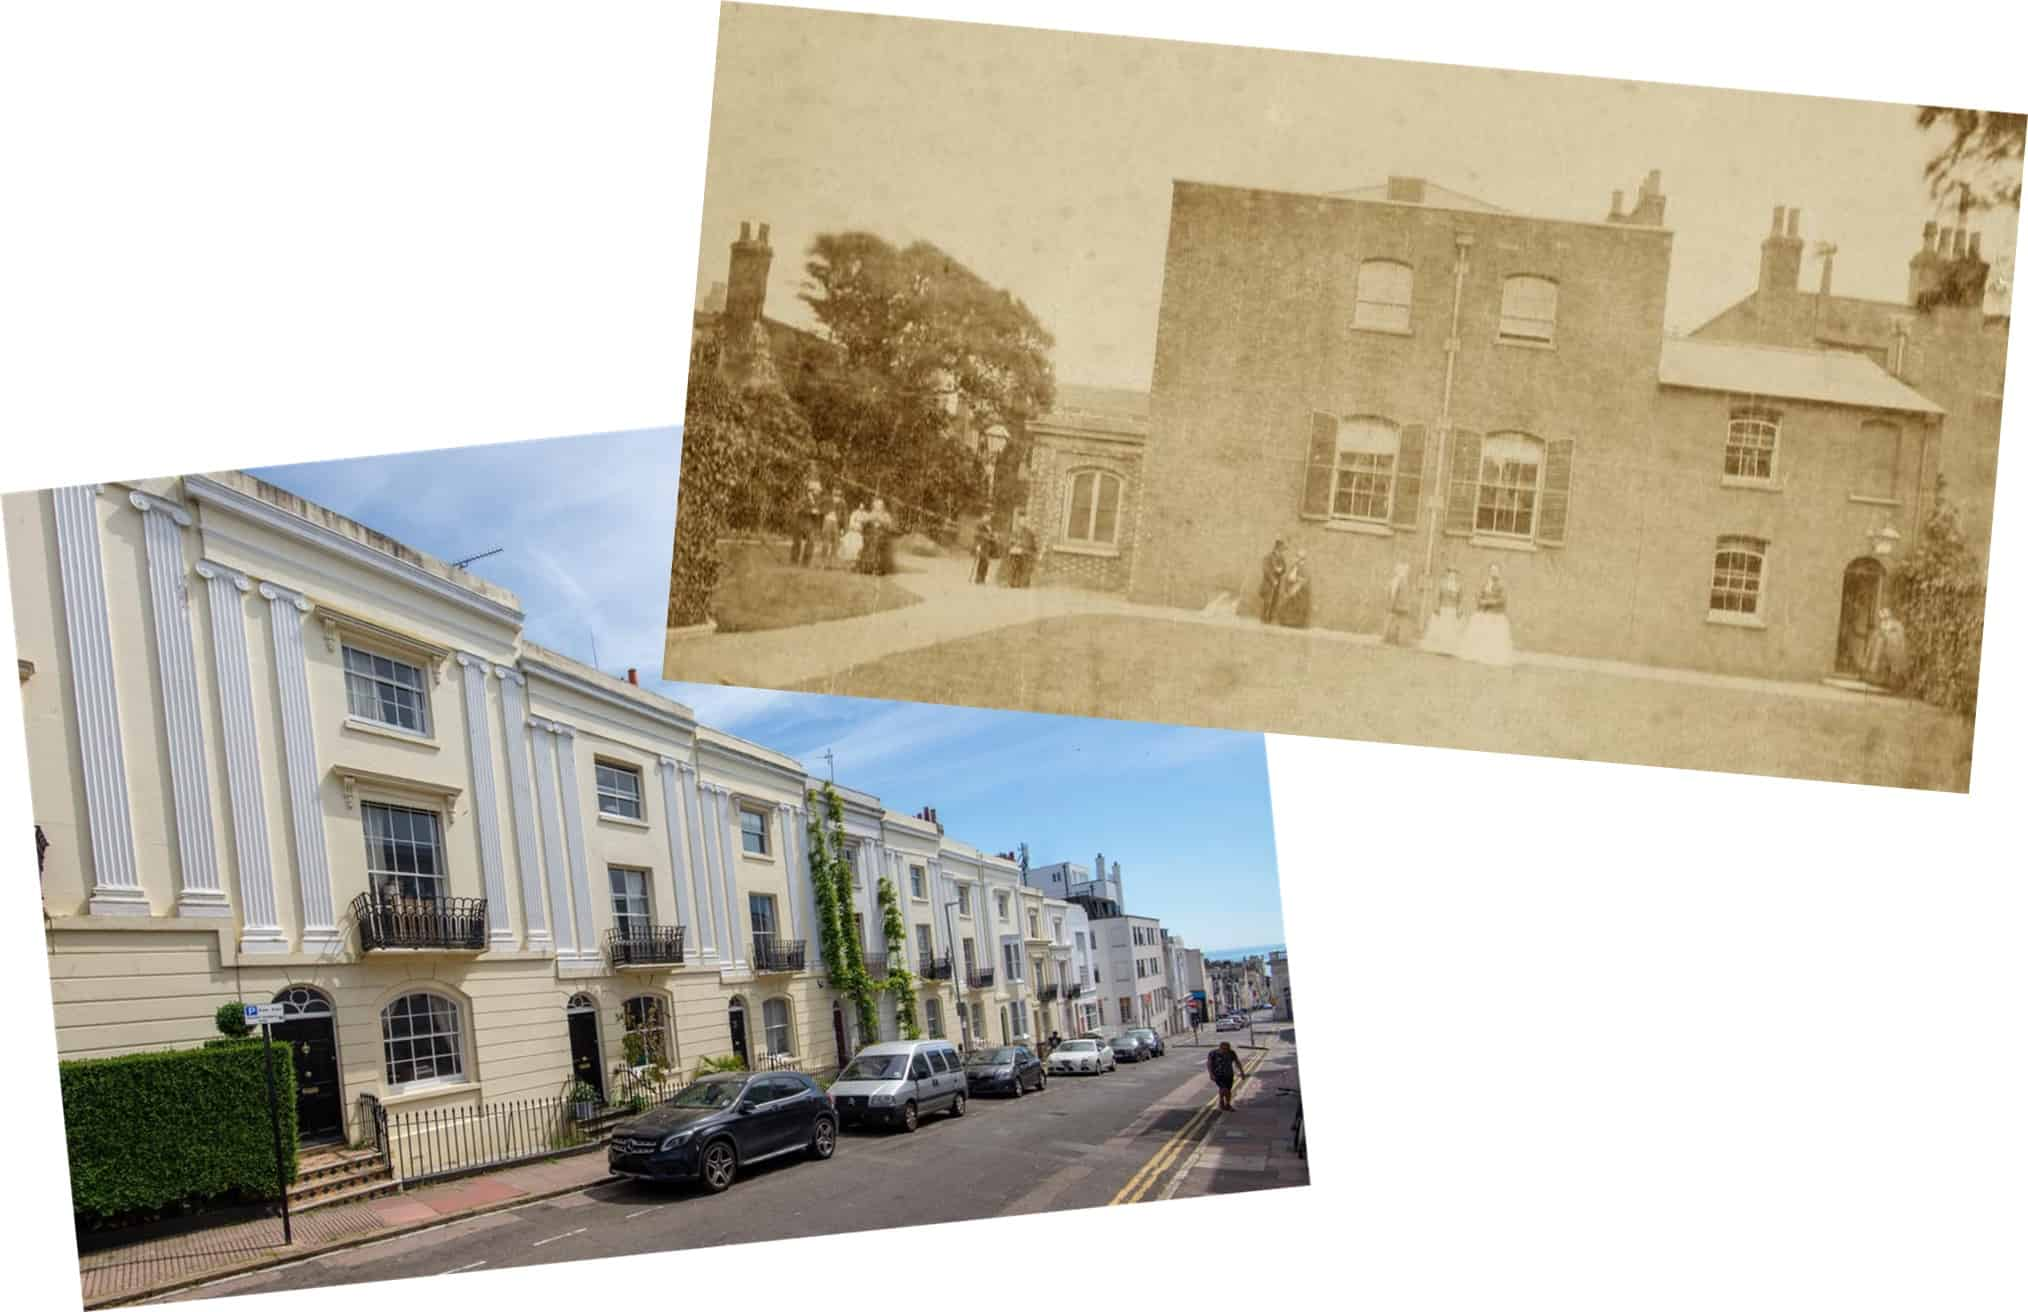 Macintosh HD:Users:rogerbateman:Desktop:Neil42:L4b Left/ Hampton Place, in the 1830's a mixture of upper and middle class houses (photo Lextons). Right/ Ship Street Meeting House (photo My Brighton & Hove).jpg